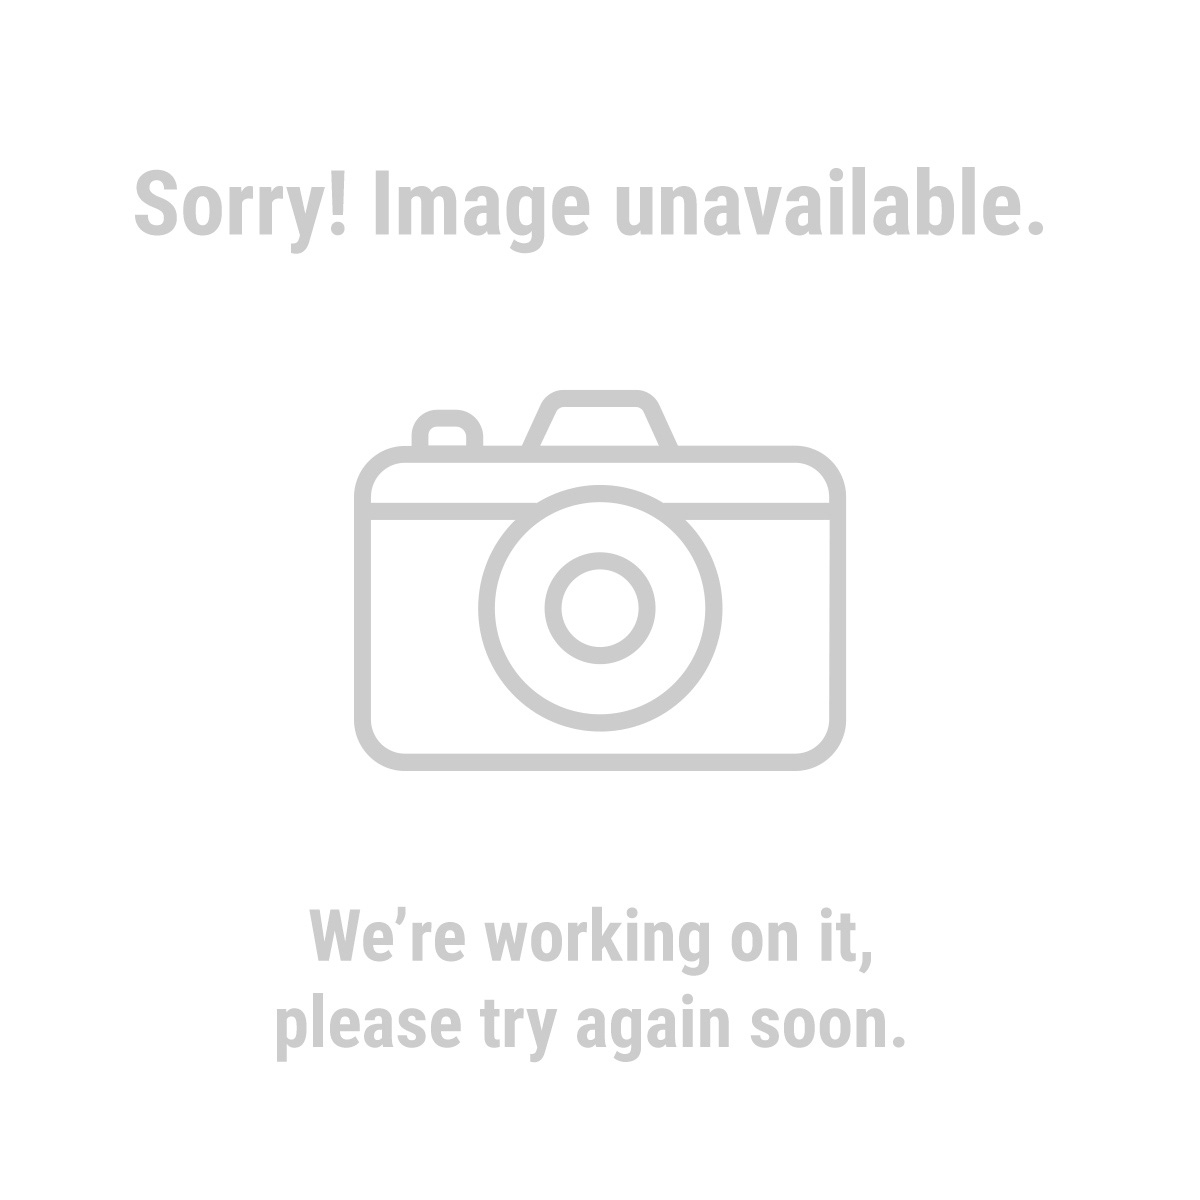 Western Safety 93256 Pack of 10 Nuisance Particle Dust Masks